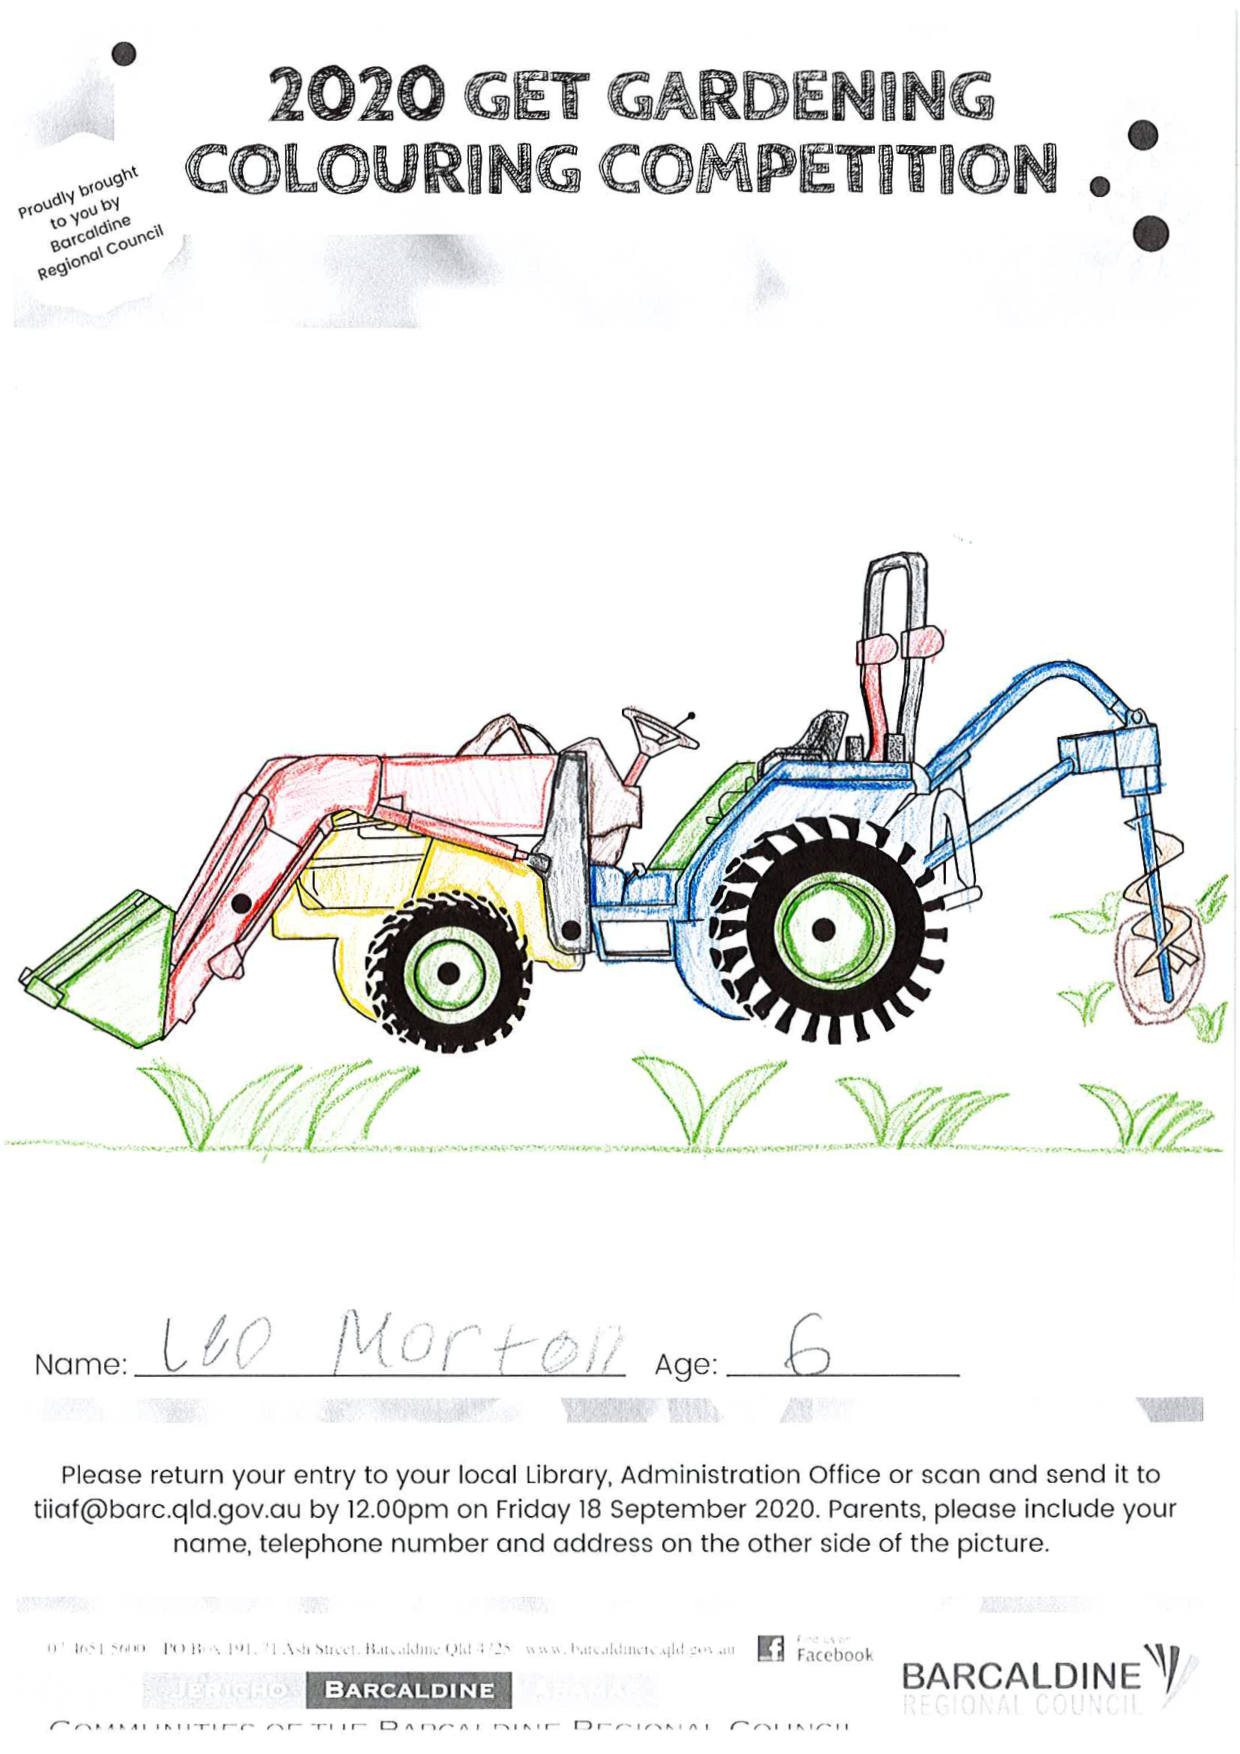 Get Gardening Colouring Competition